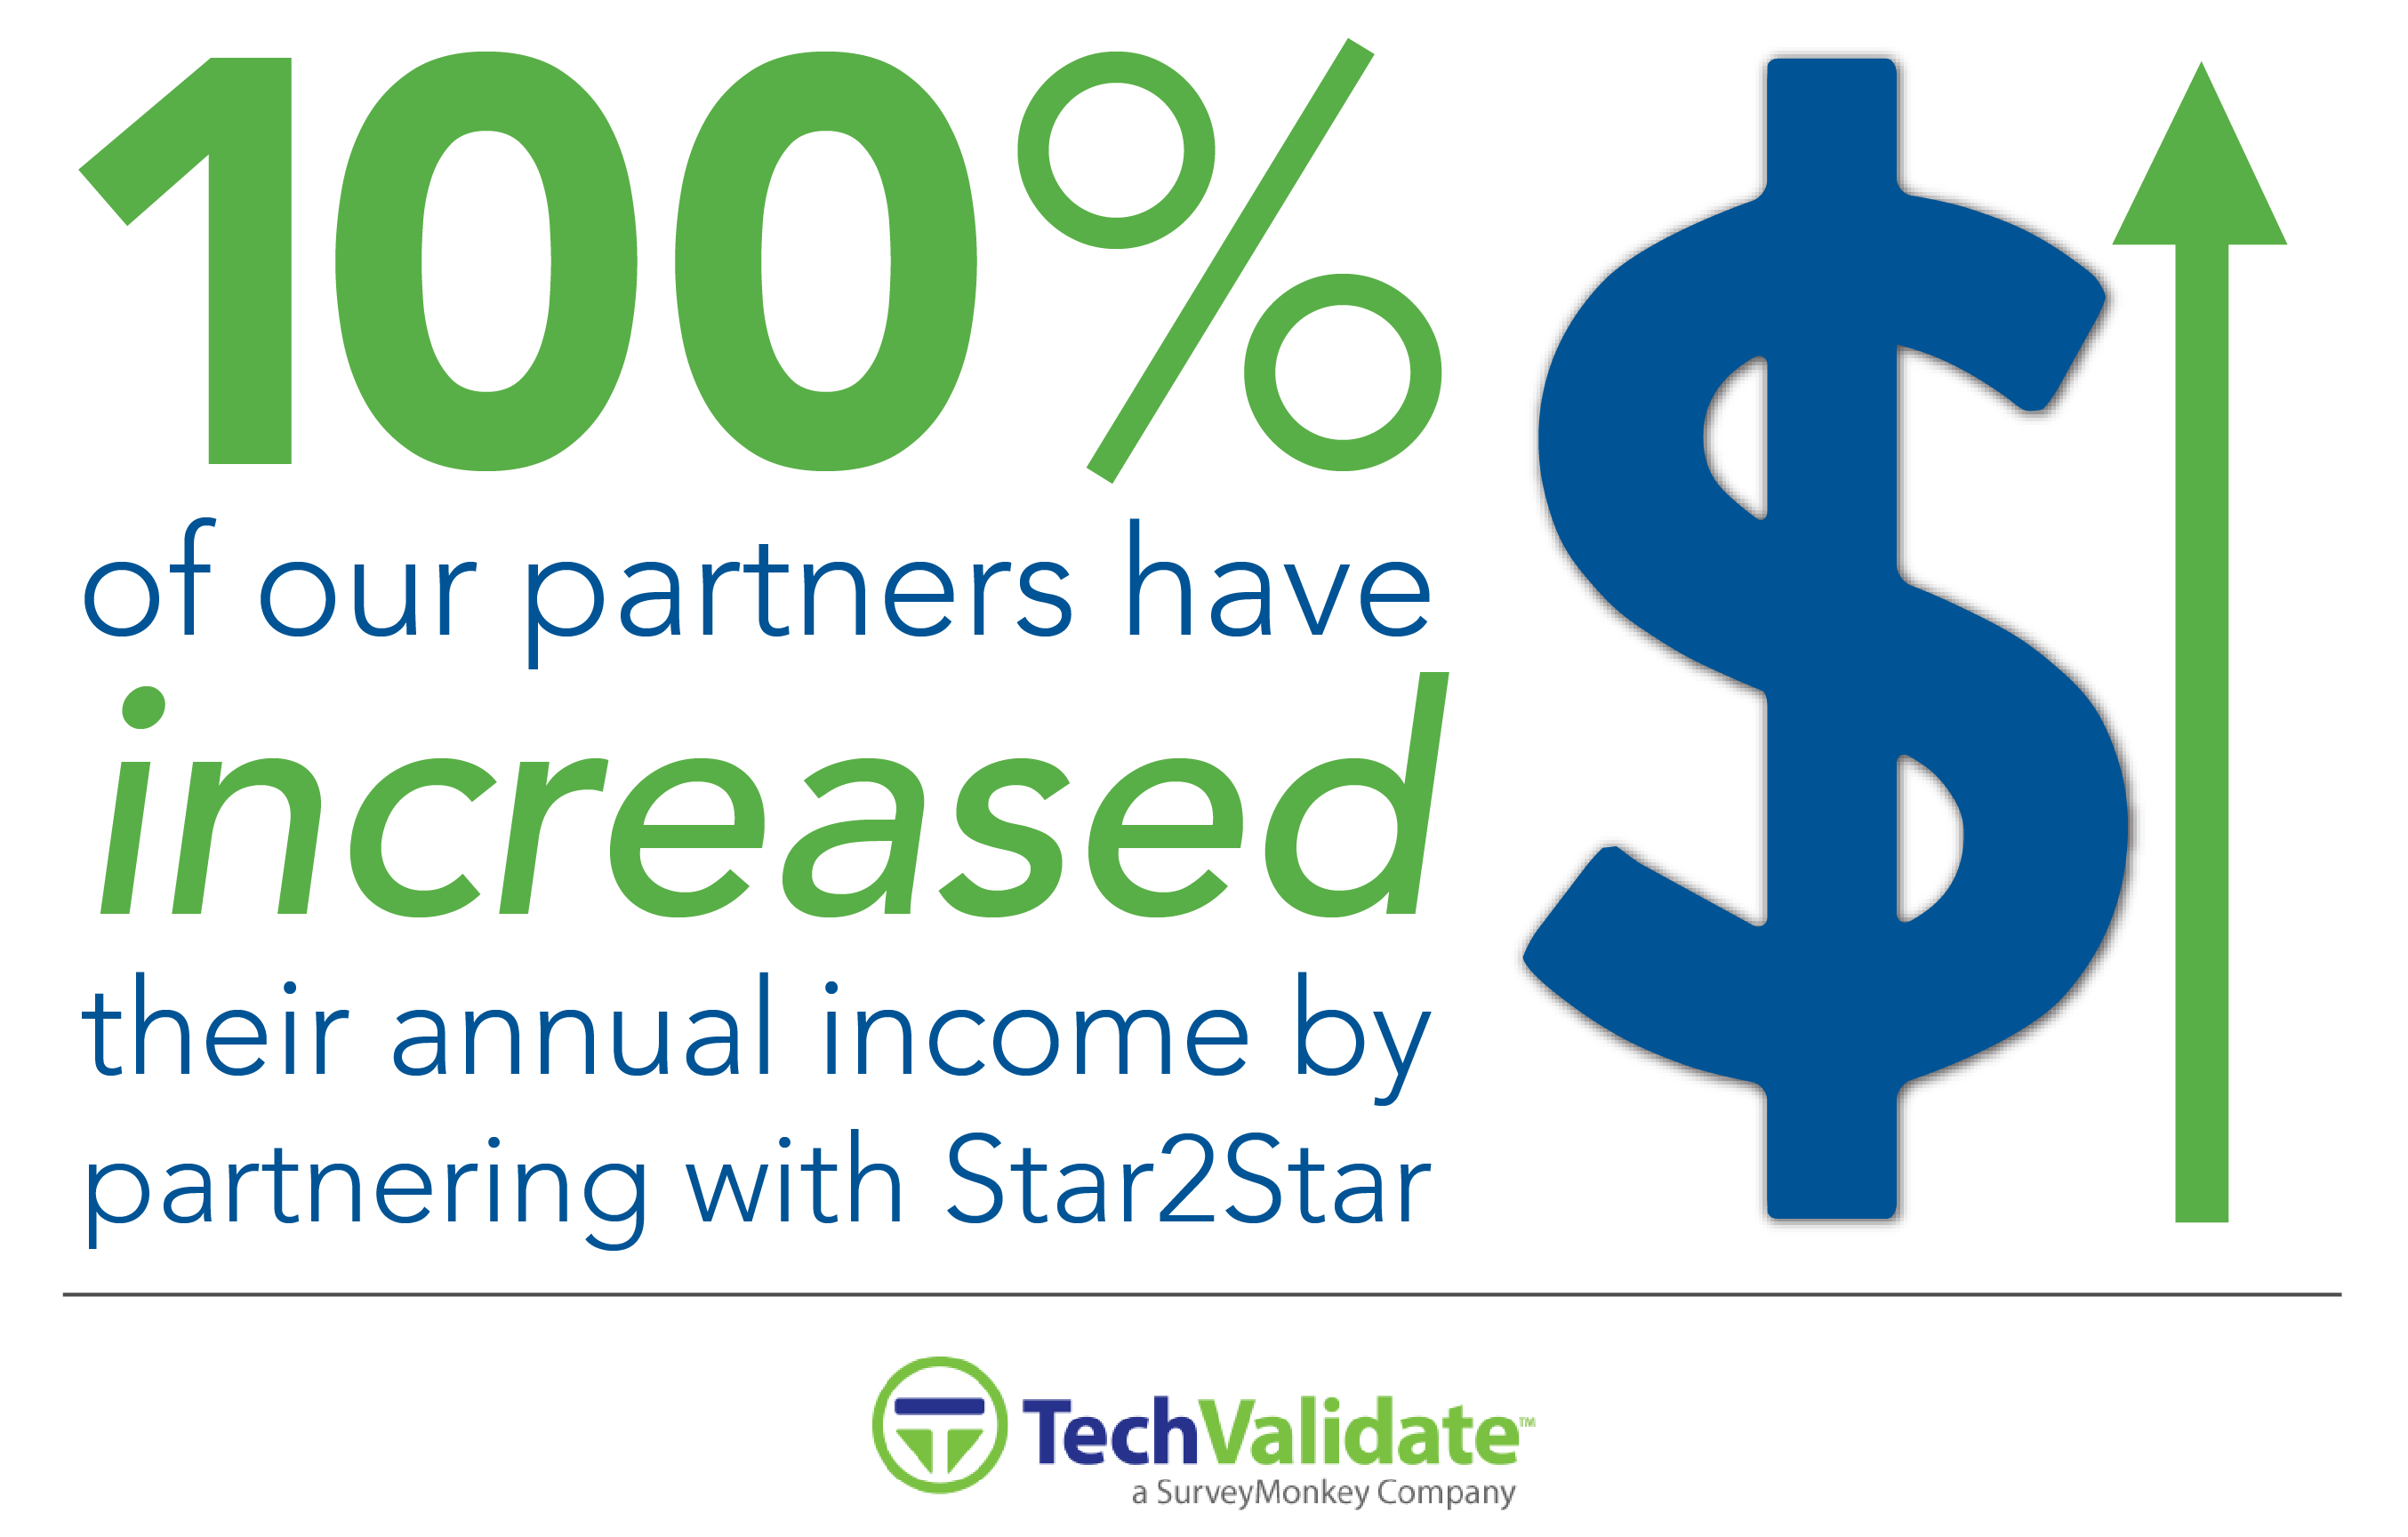 100% of Surveyed Partners Increased Income